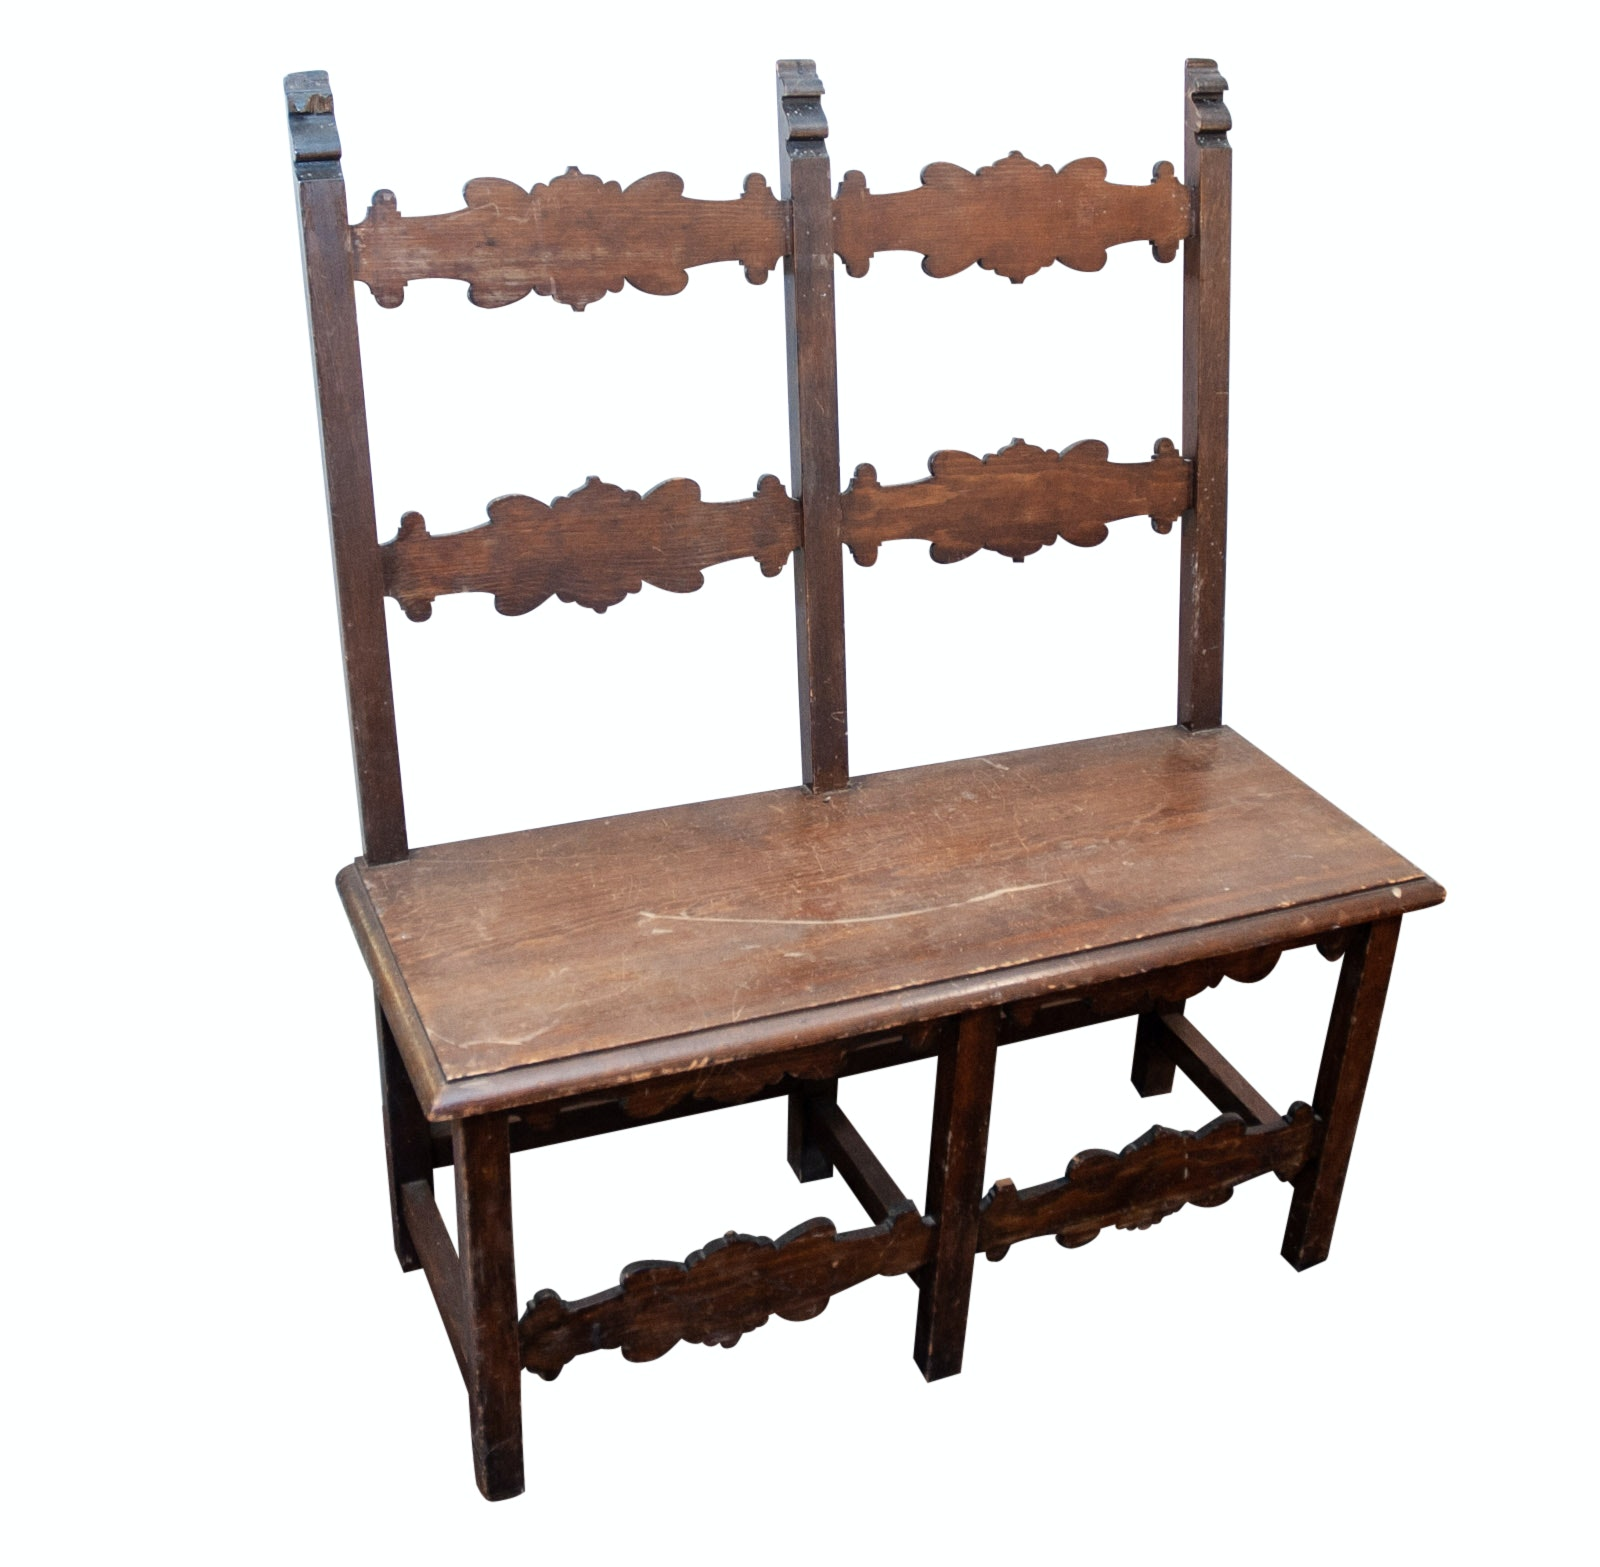 Spanish Baroque Style Wooden Bench